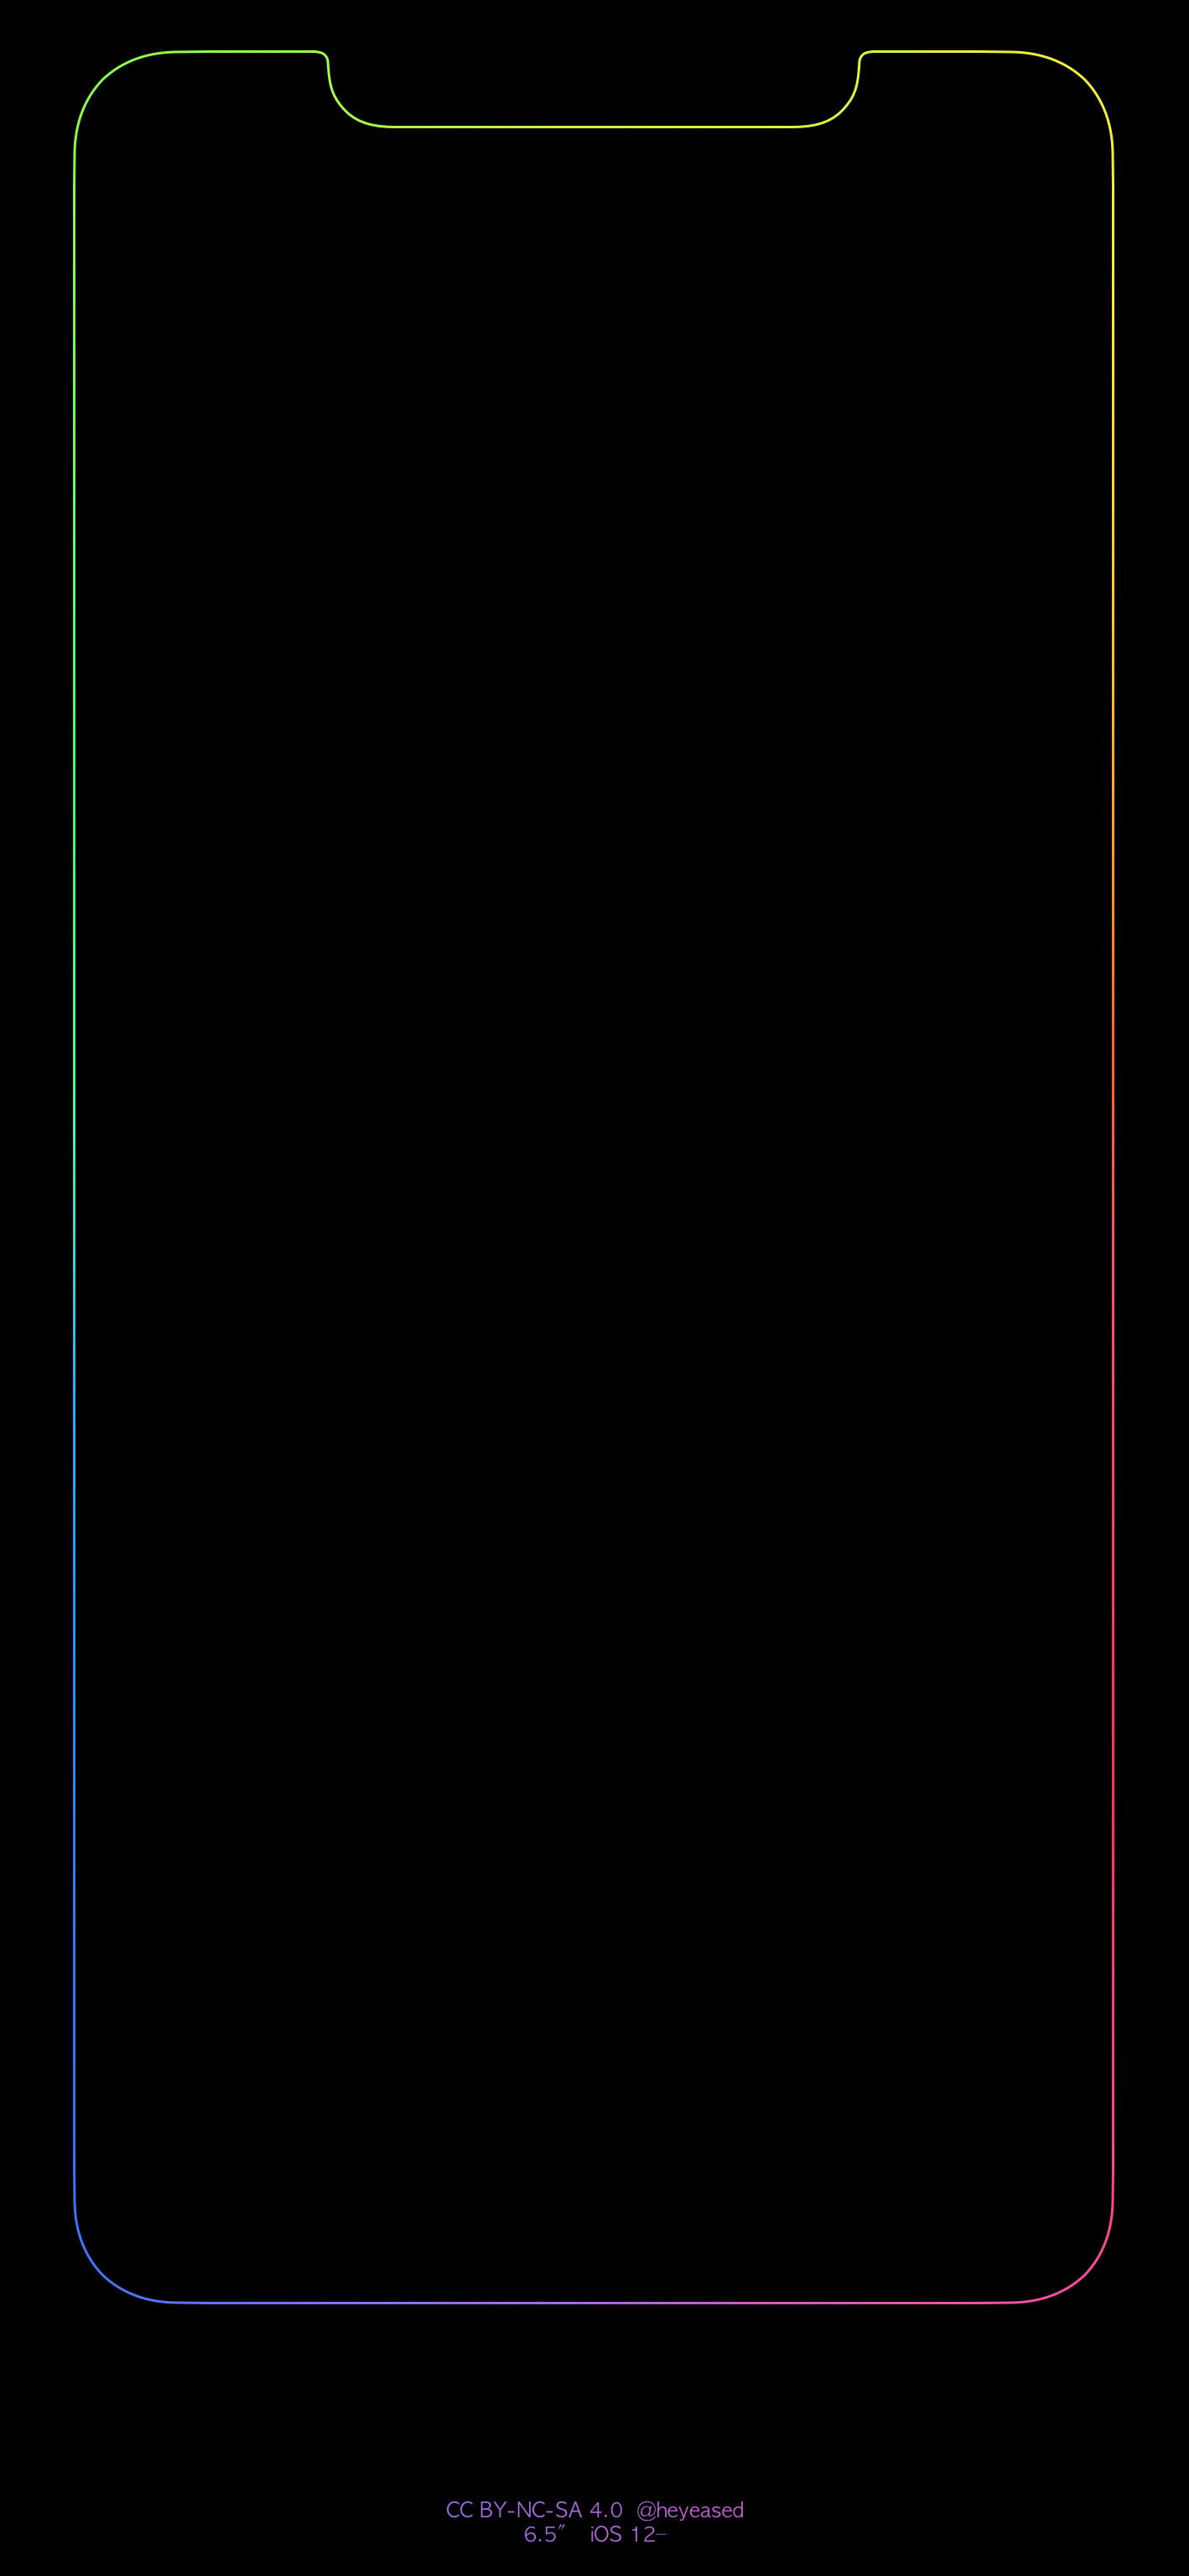 Iphone 11 Pro Max Oled Black Wallpapers Wallpaper Cave